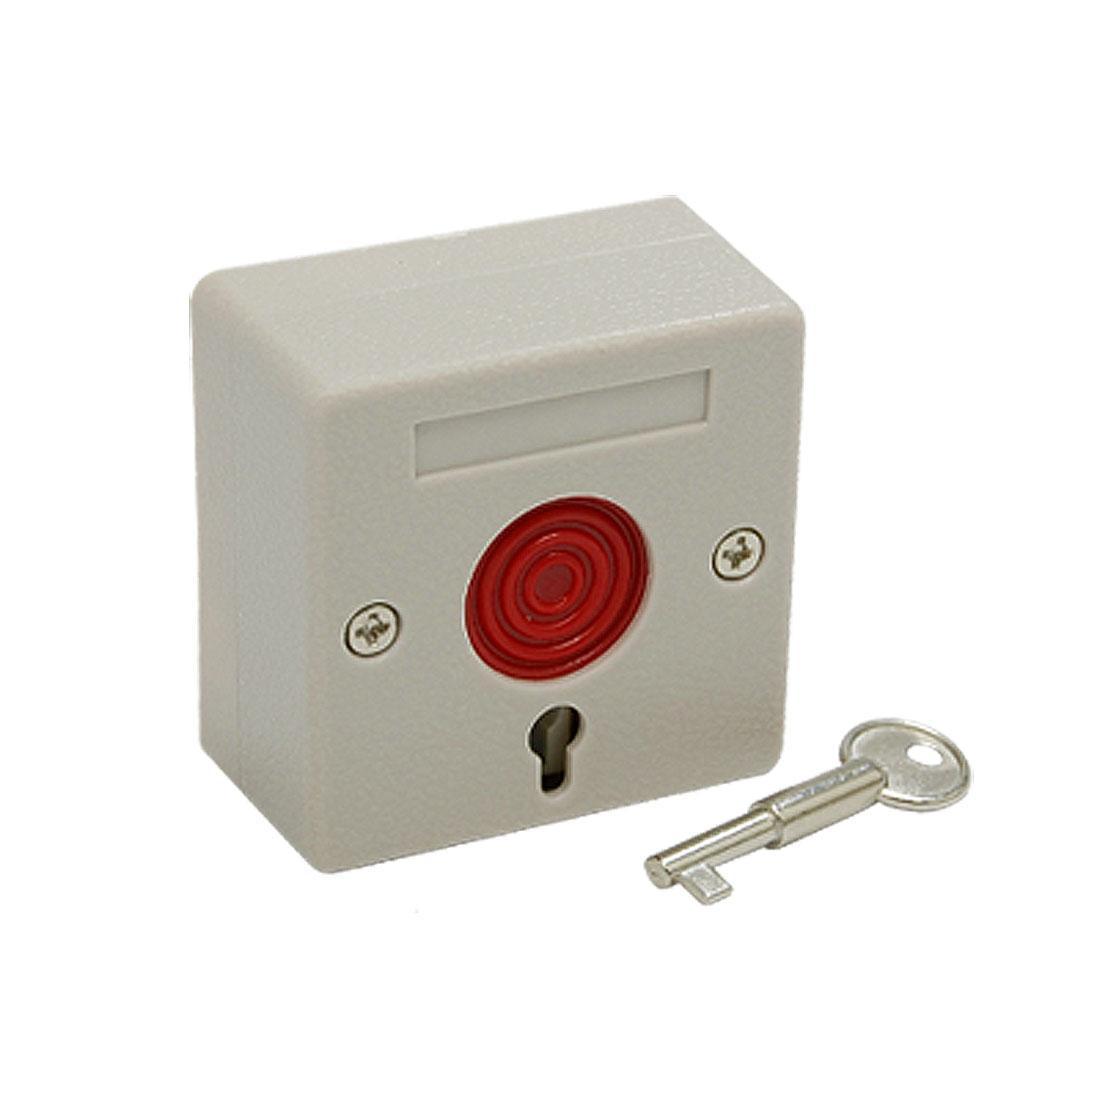 Mini Square Family Office Emergency Panic Button